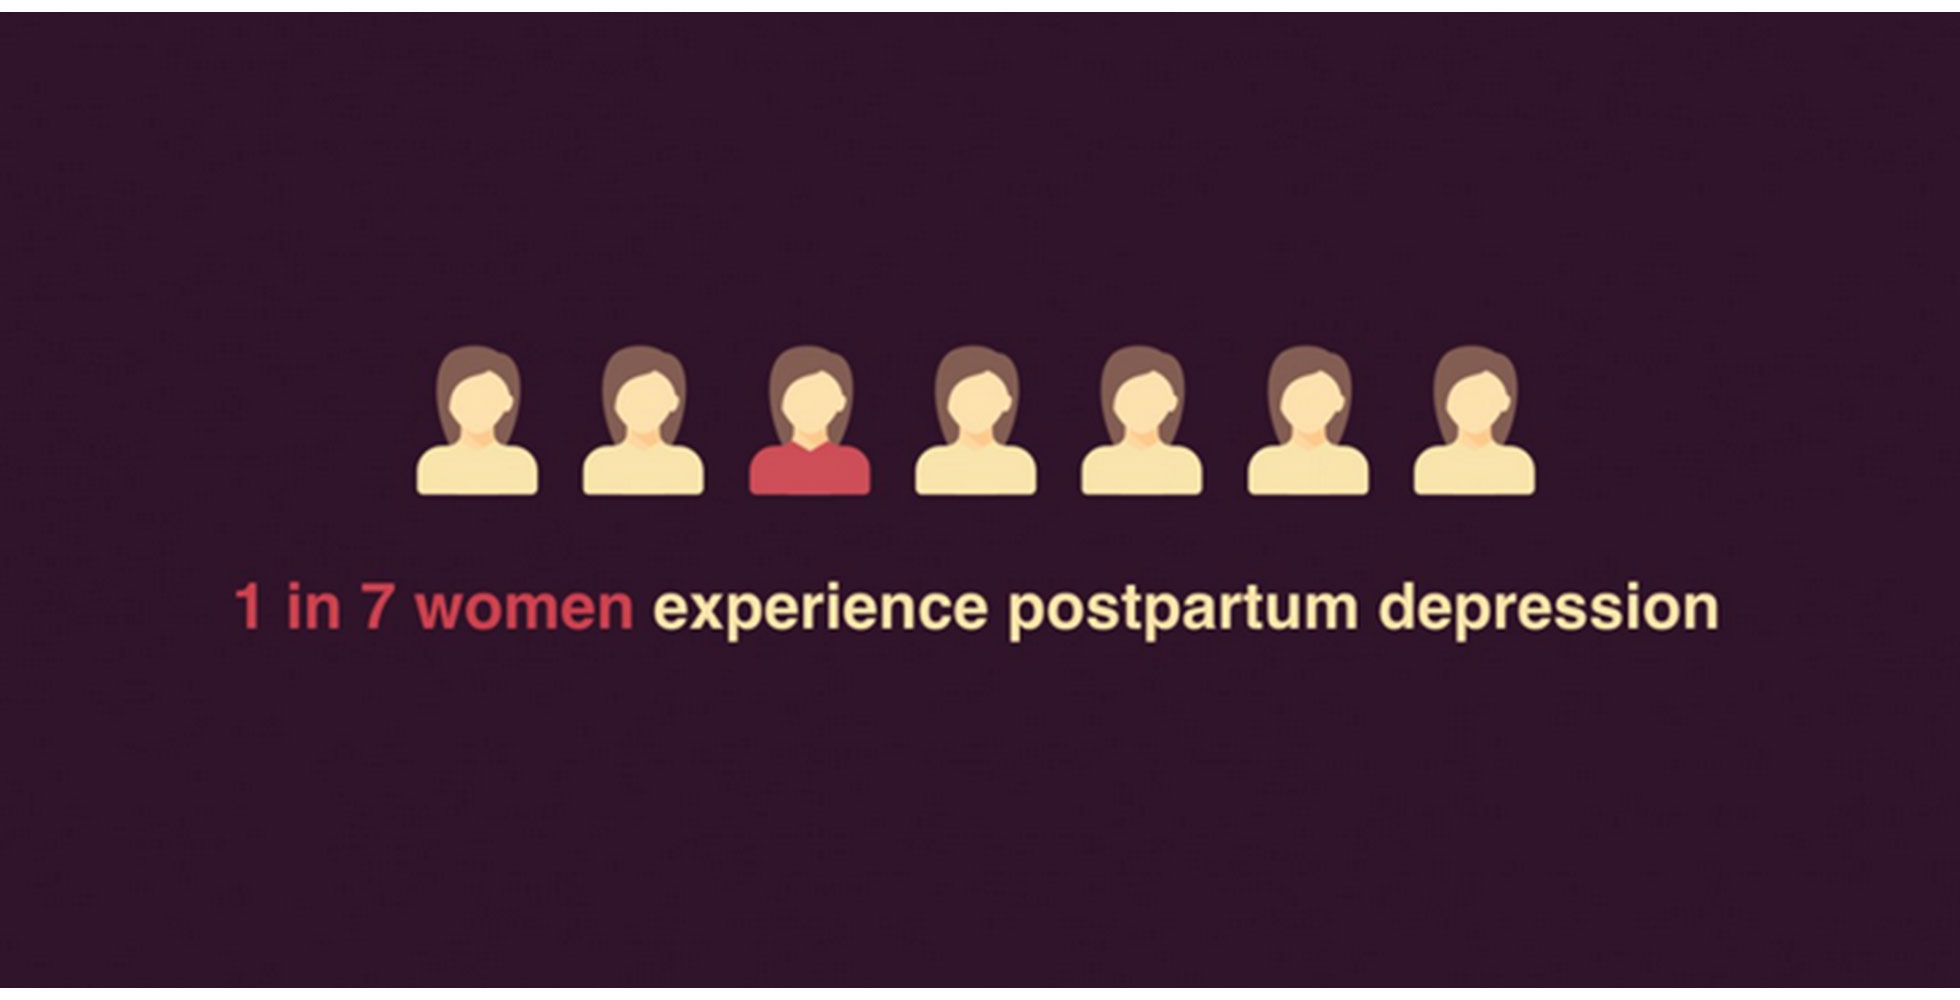 An ad describing the ratio of women who experience postpartum depression.